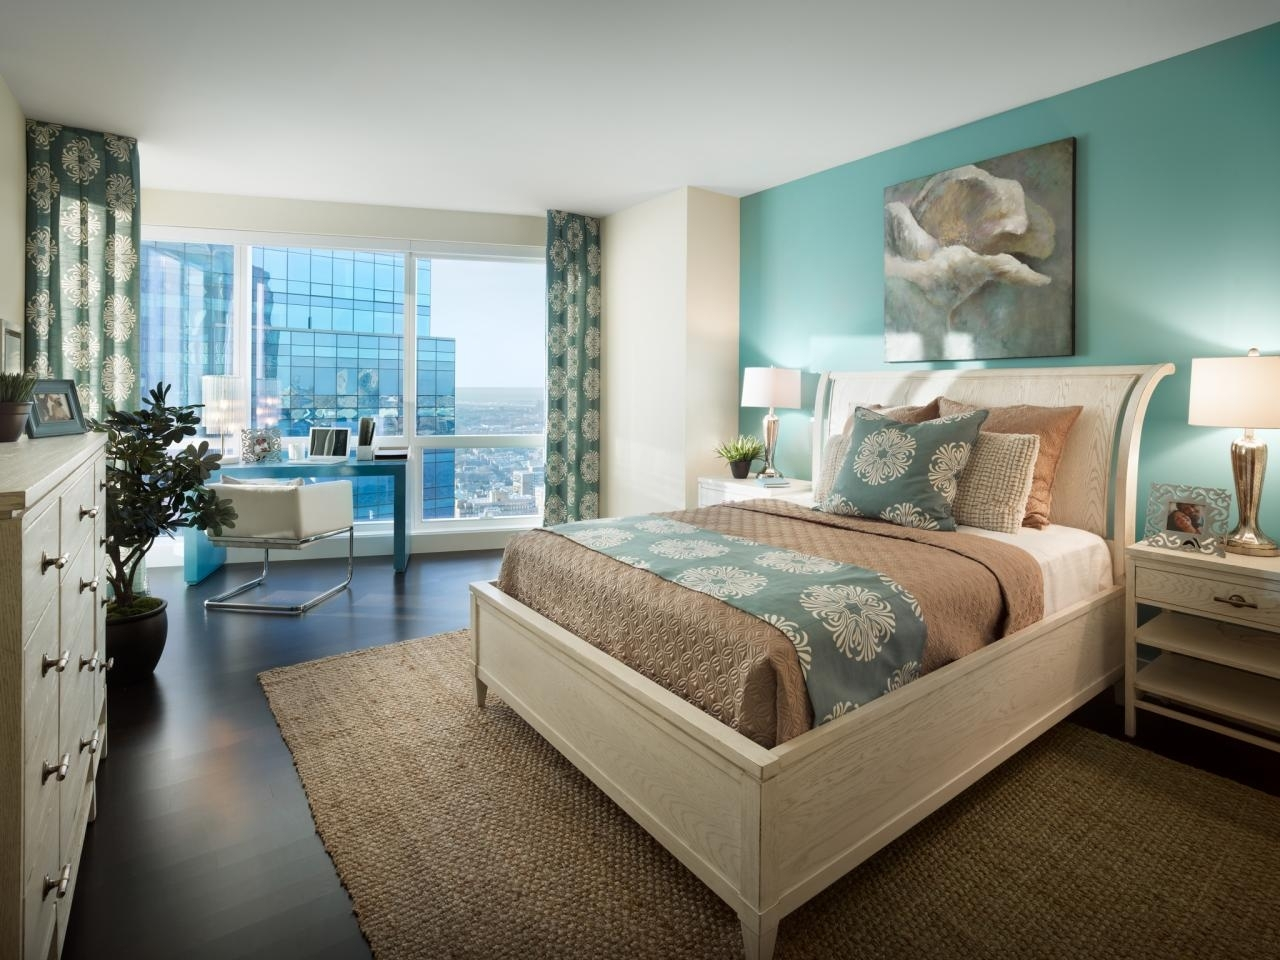 Bedroom | Coastal Accent Use Aquamarine Wall Accent – Contrast Way For Most Recently Released Wall Accents Behind Bed (View 6 of 15)